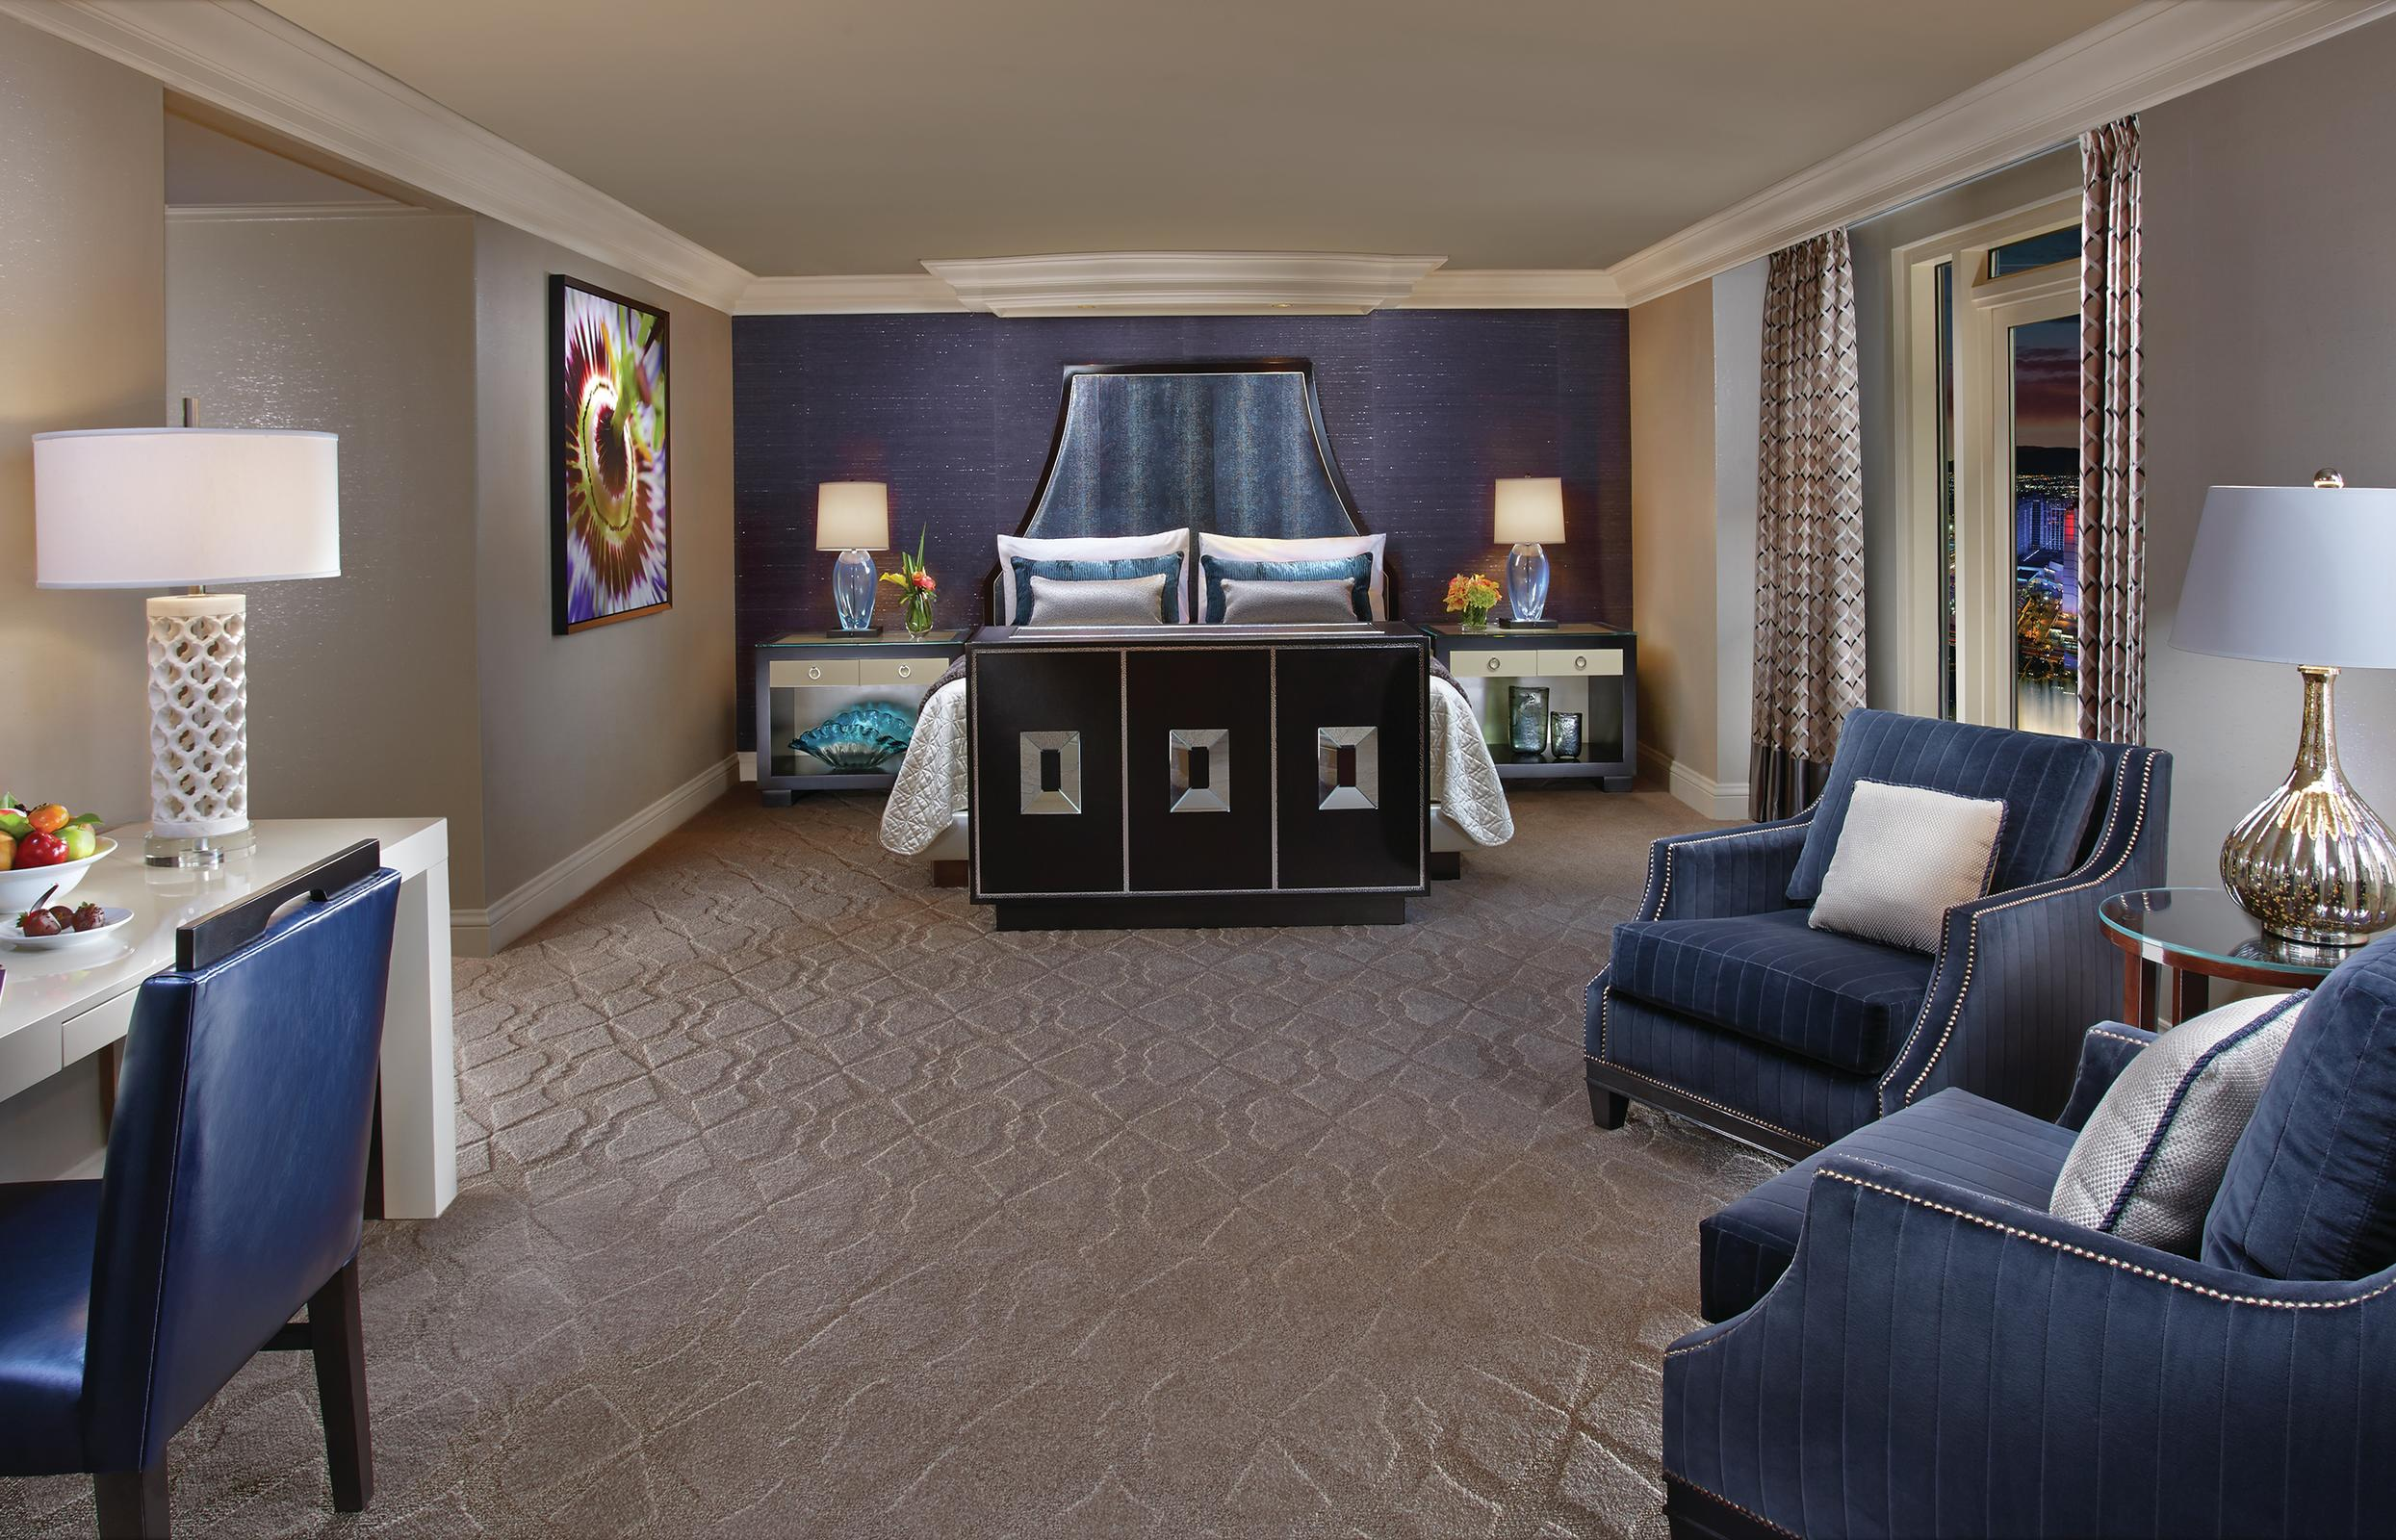 The bedrooms of our 2 Bedroom Lakeview Suites are stunning.